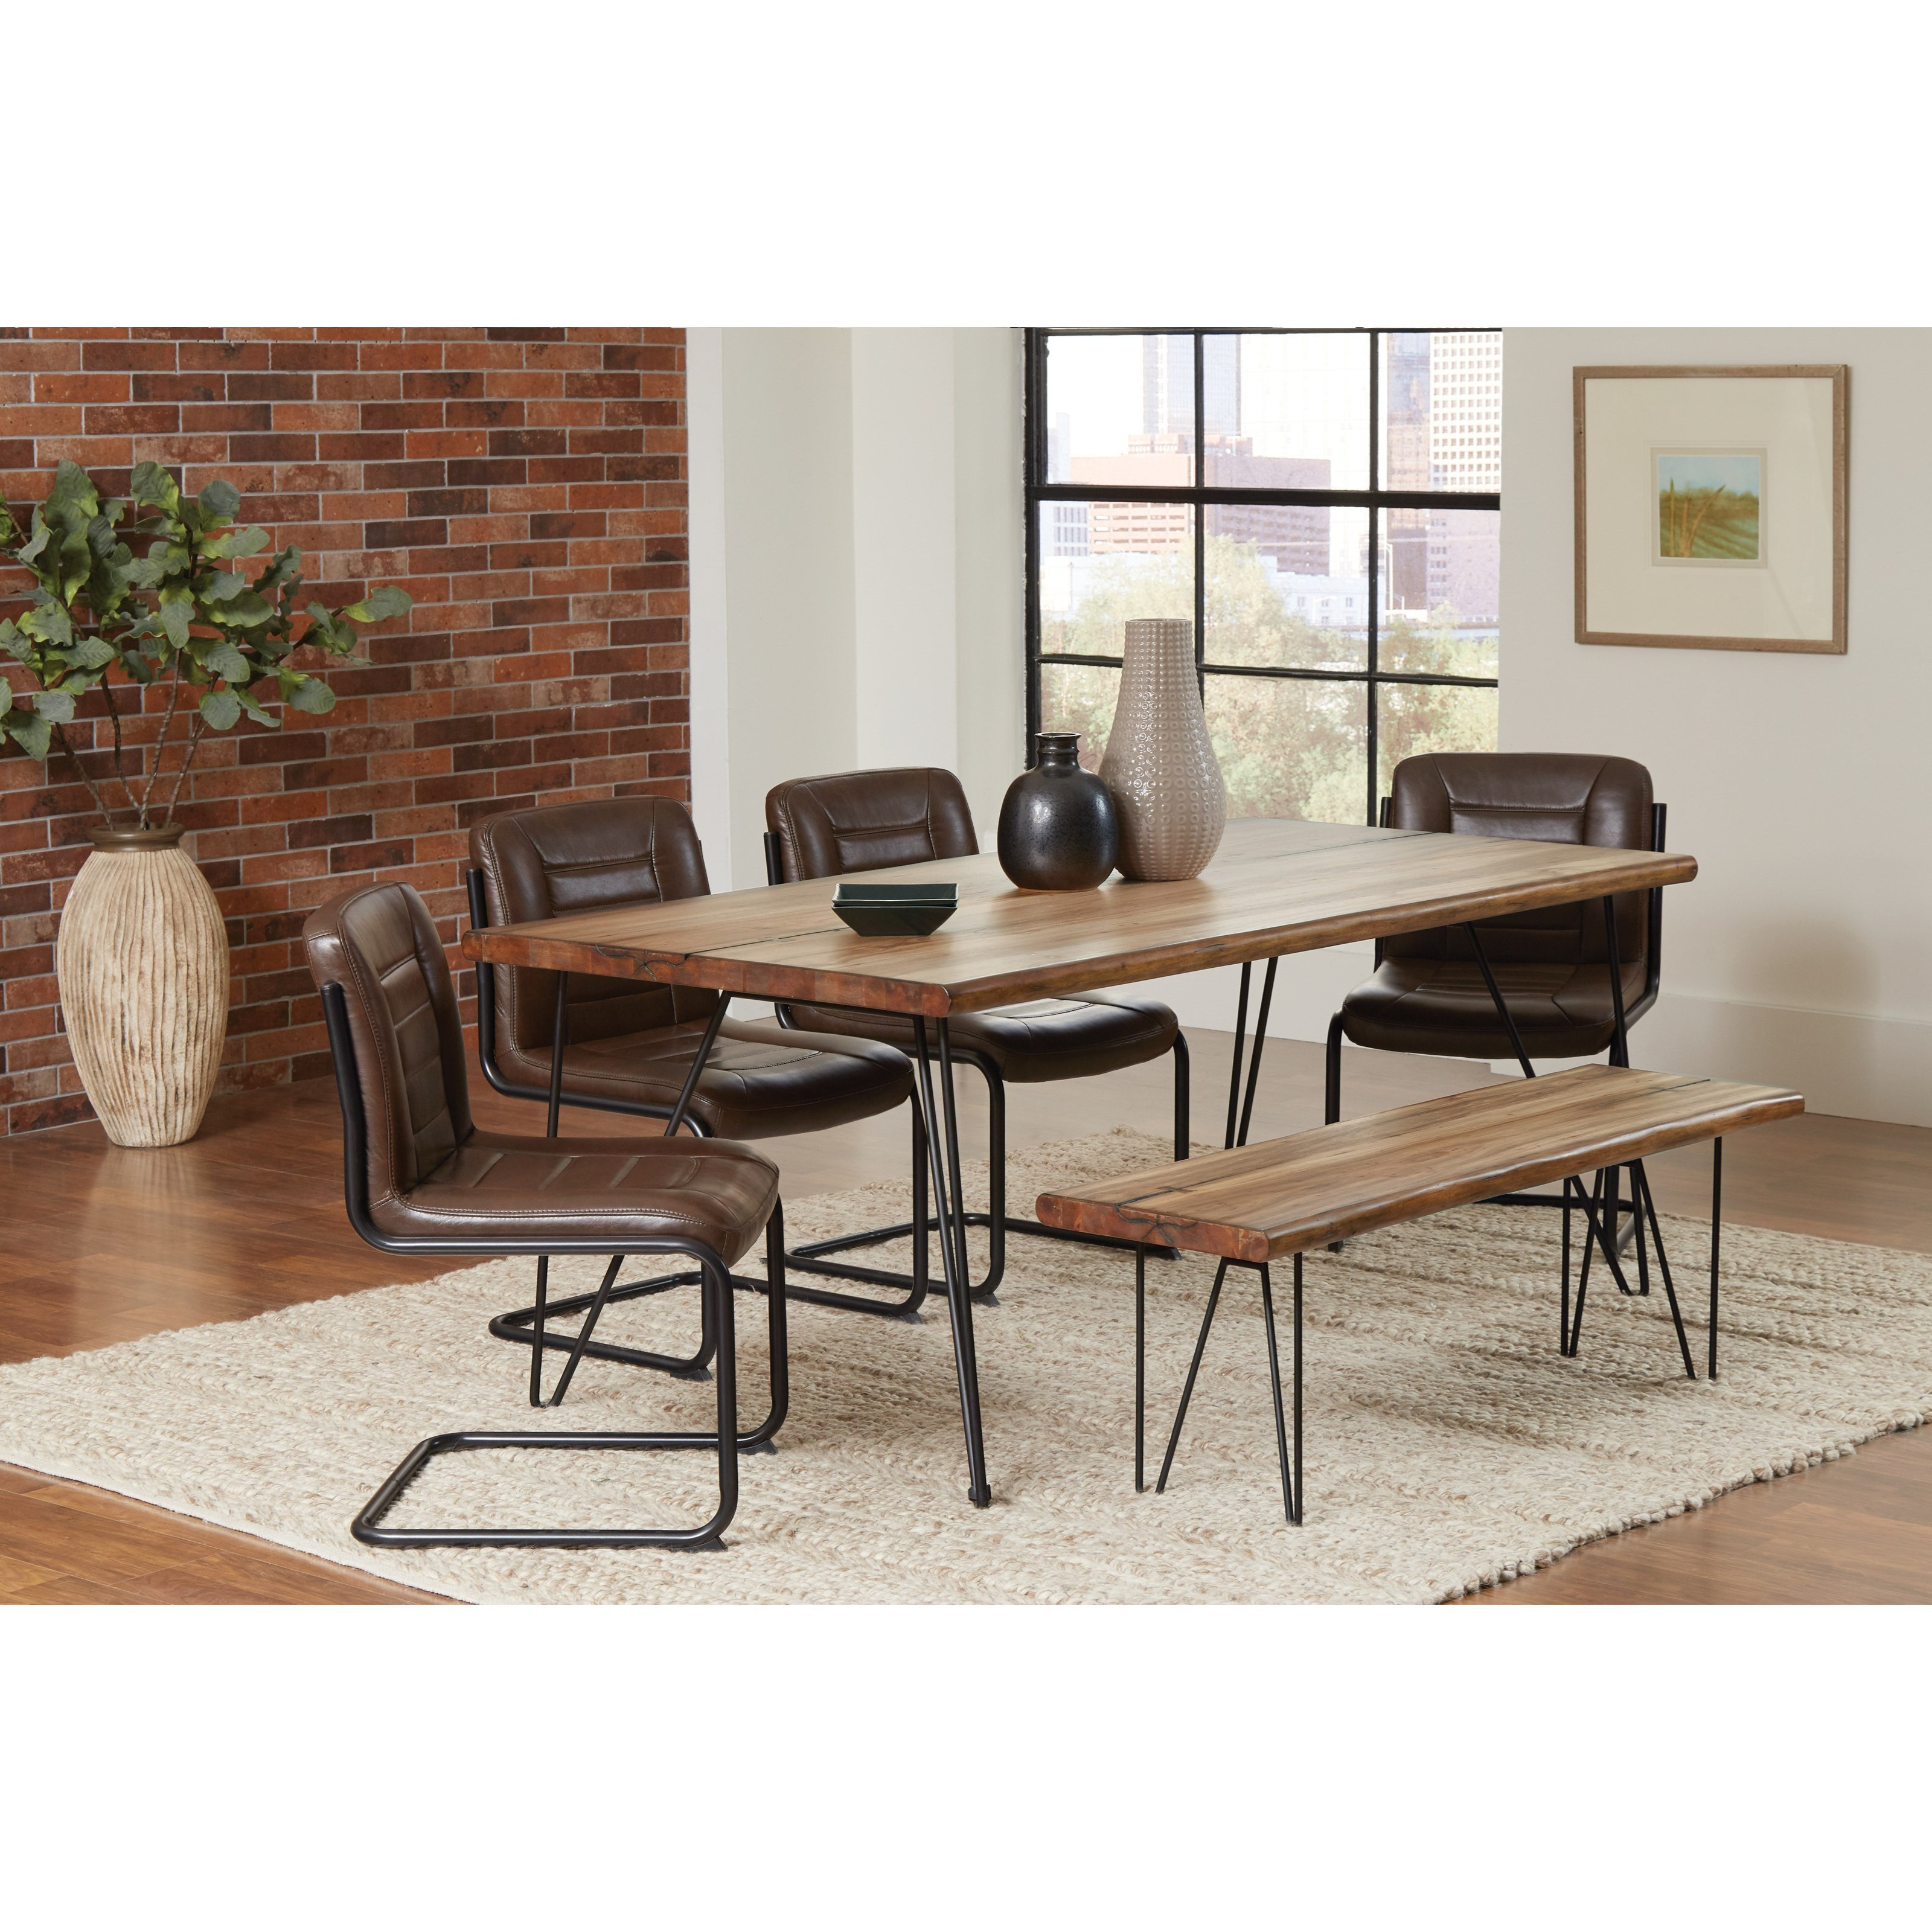 Coaster Chambler Dining Set with Bench - Item Number: 122231+122233+4x130084